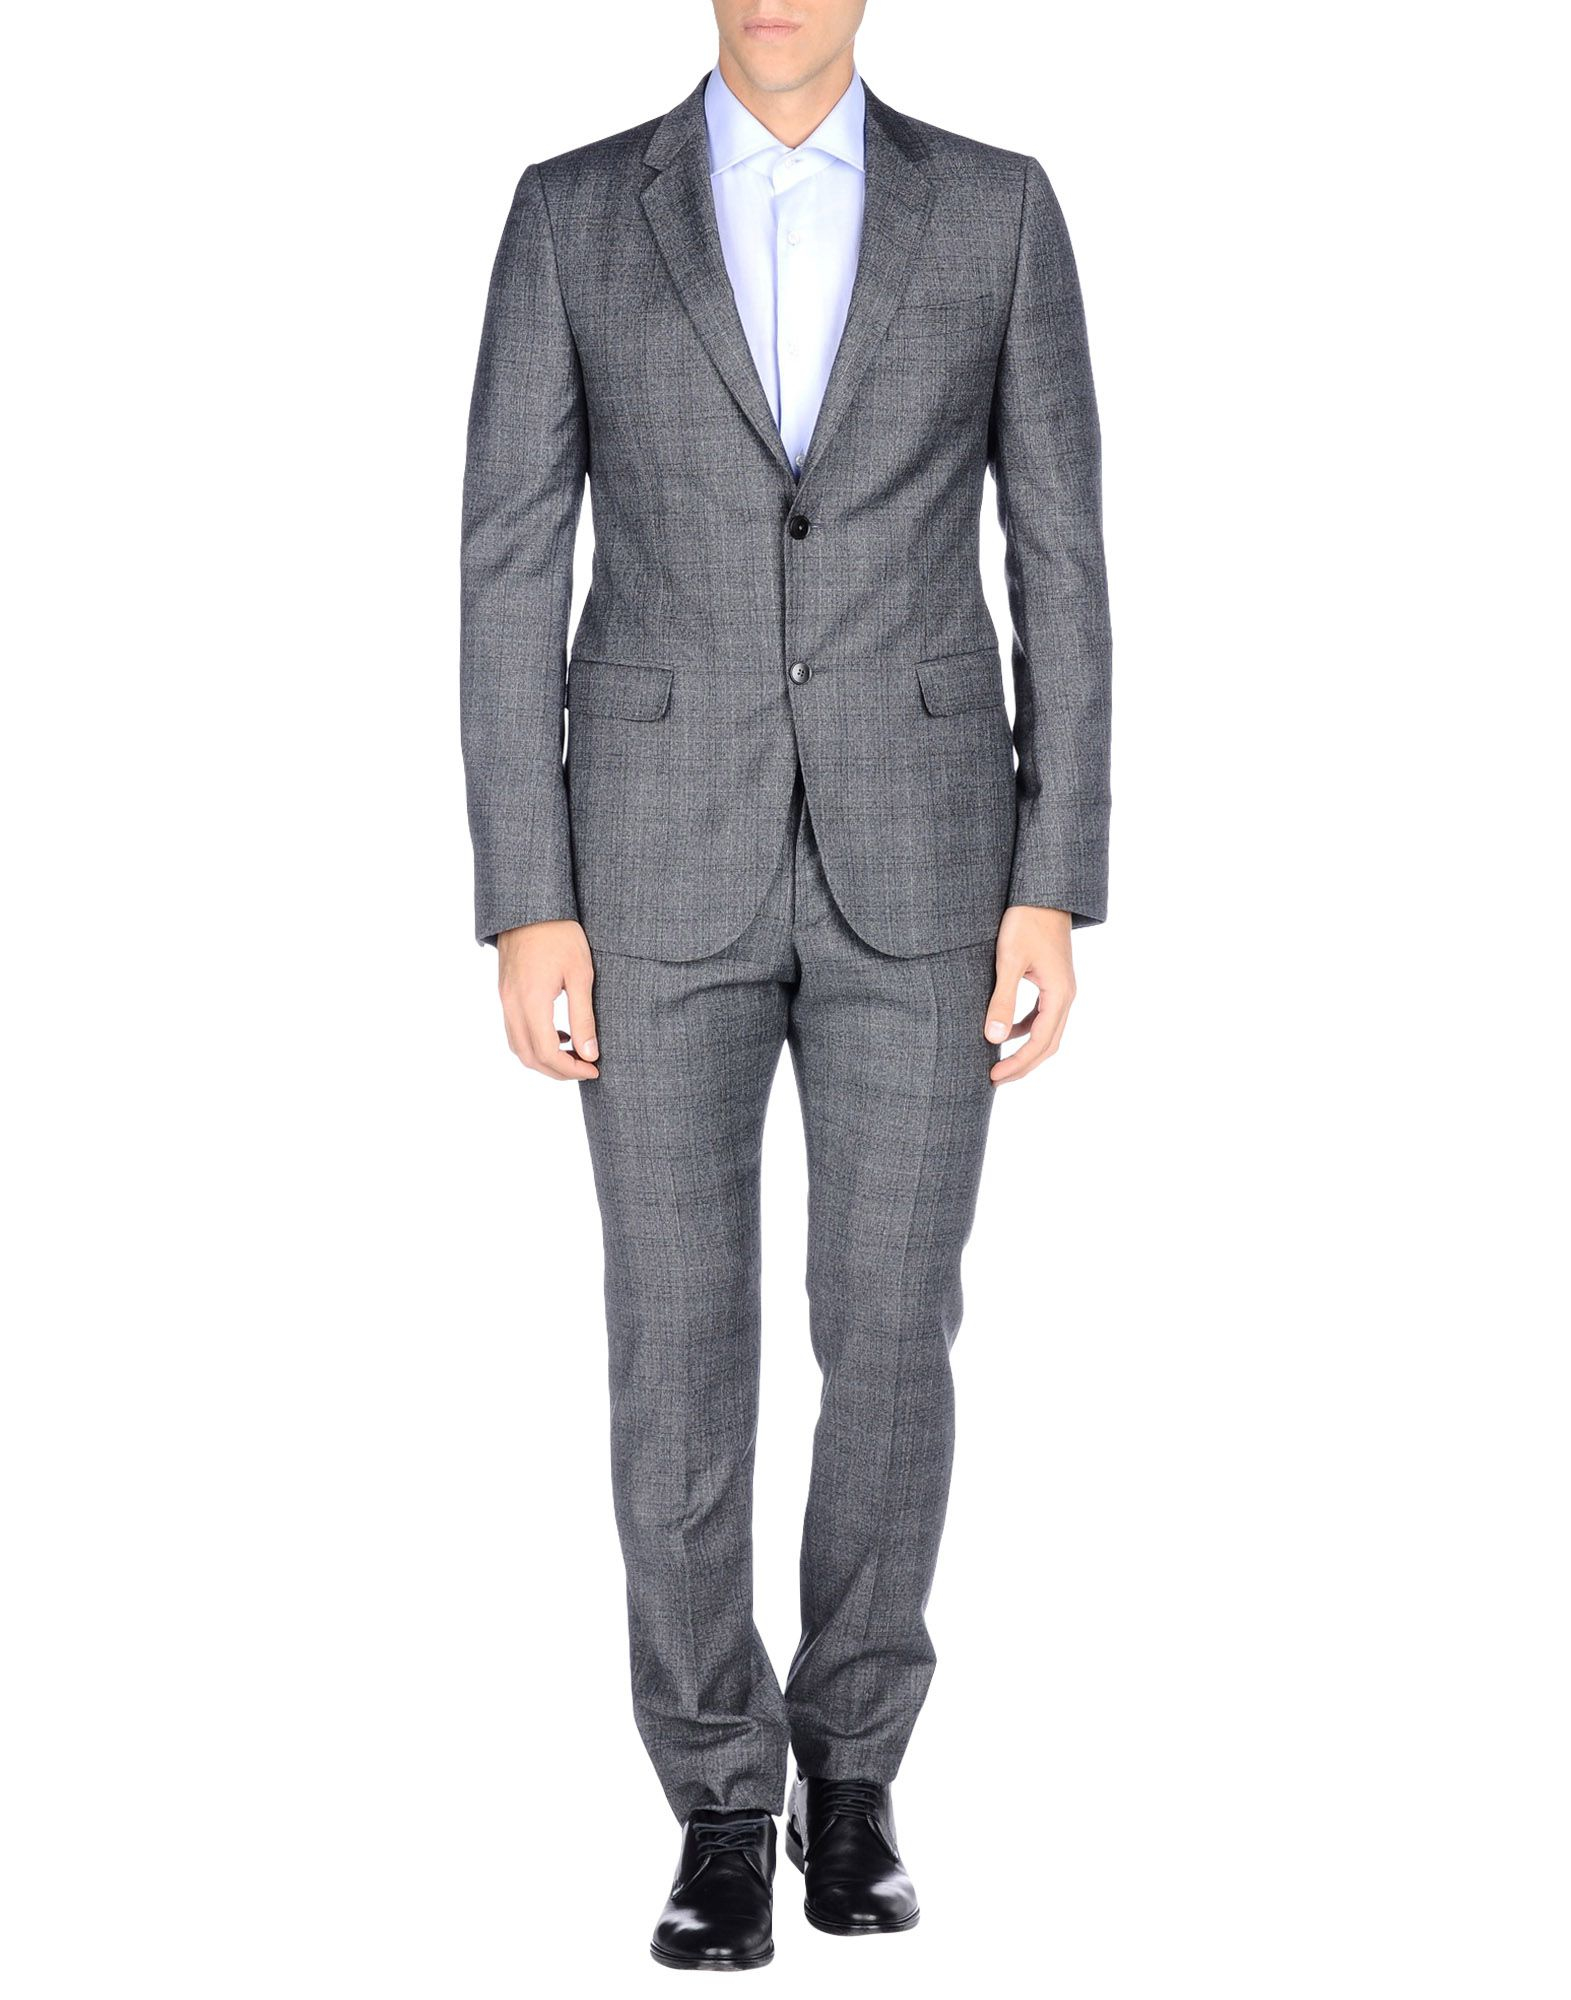 Lyst Gucci Suit In Gray For Men